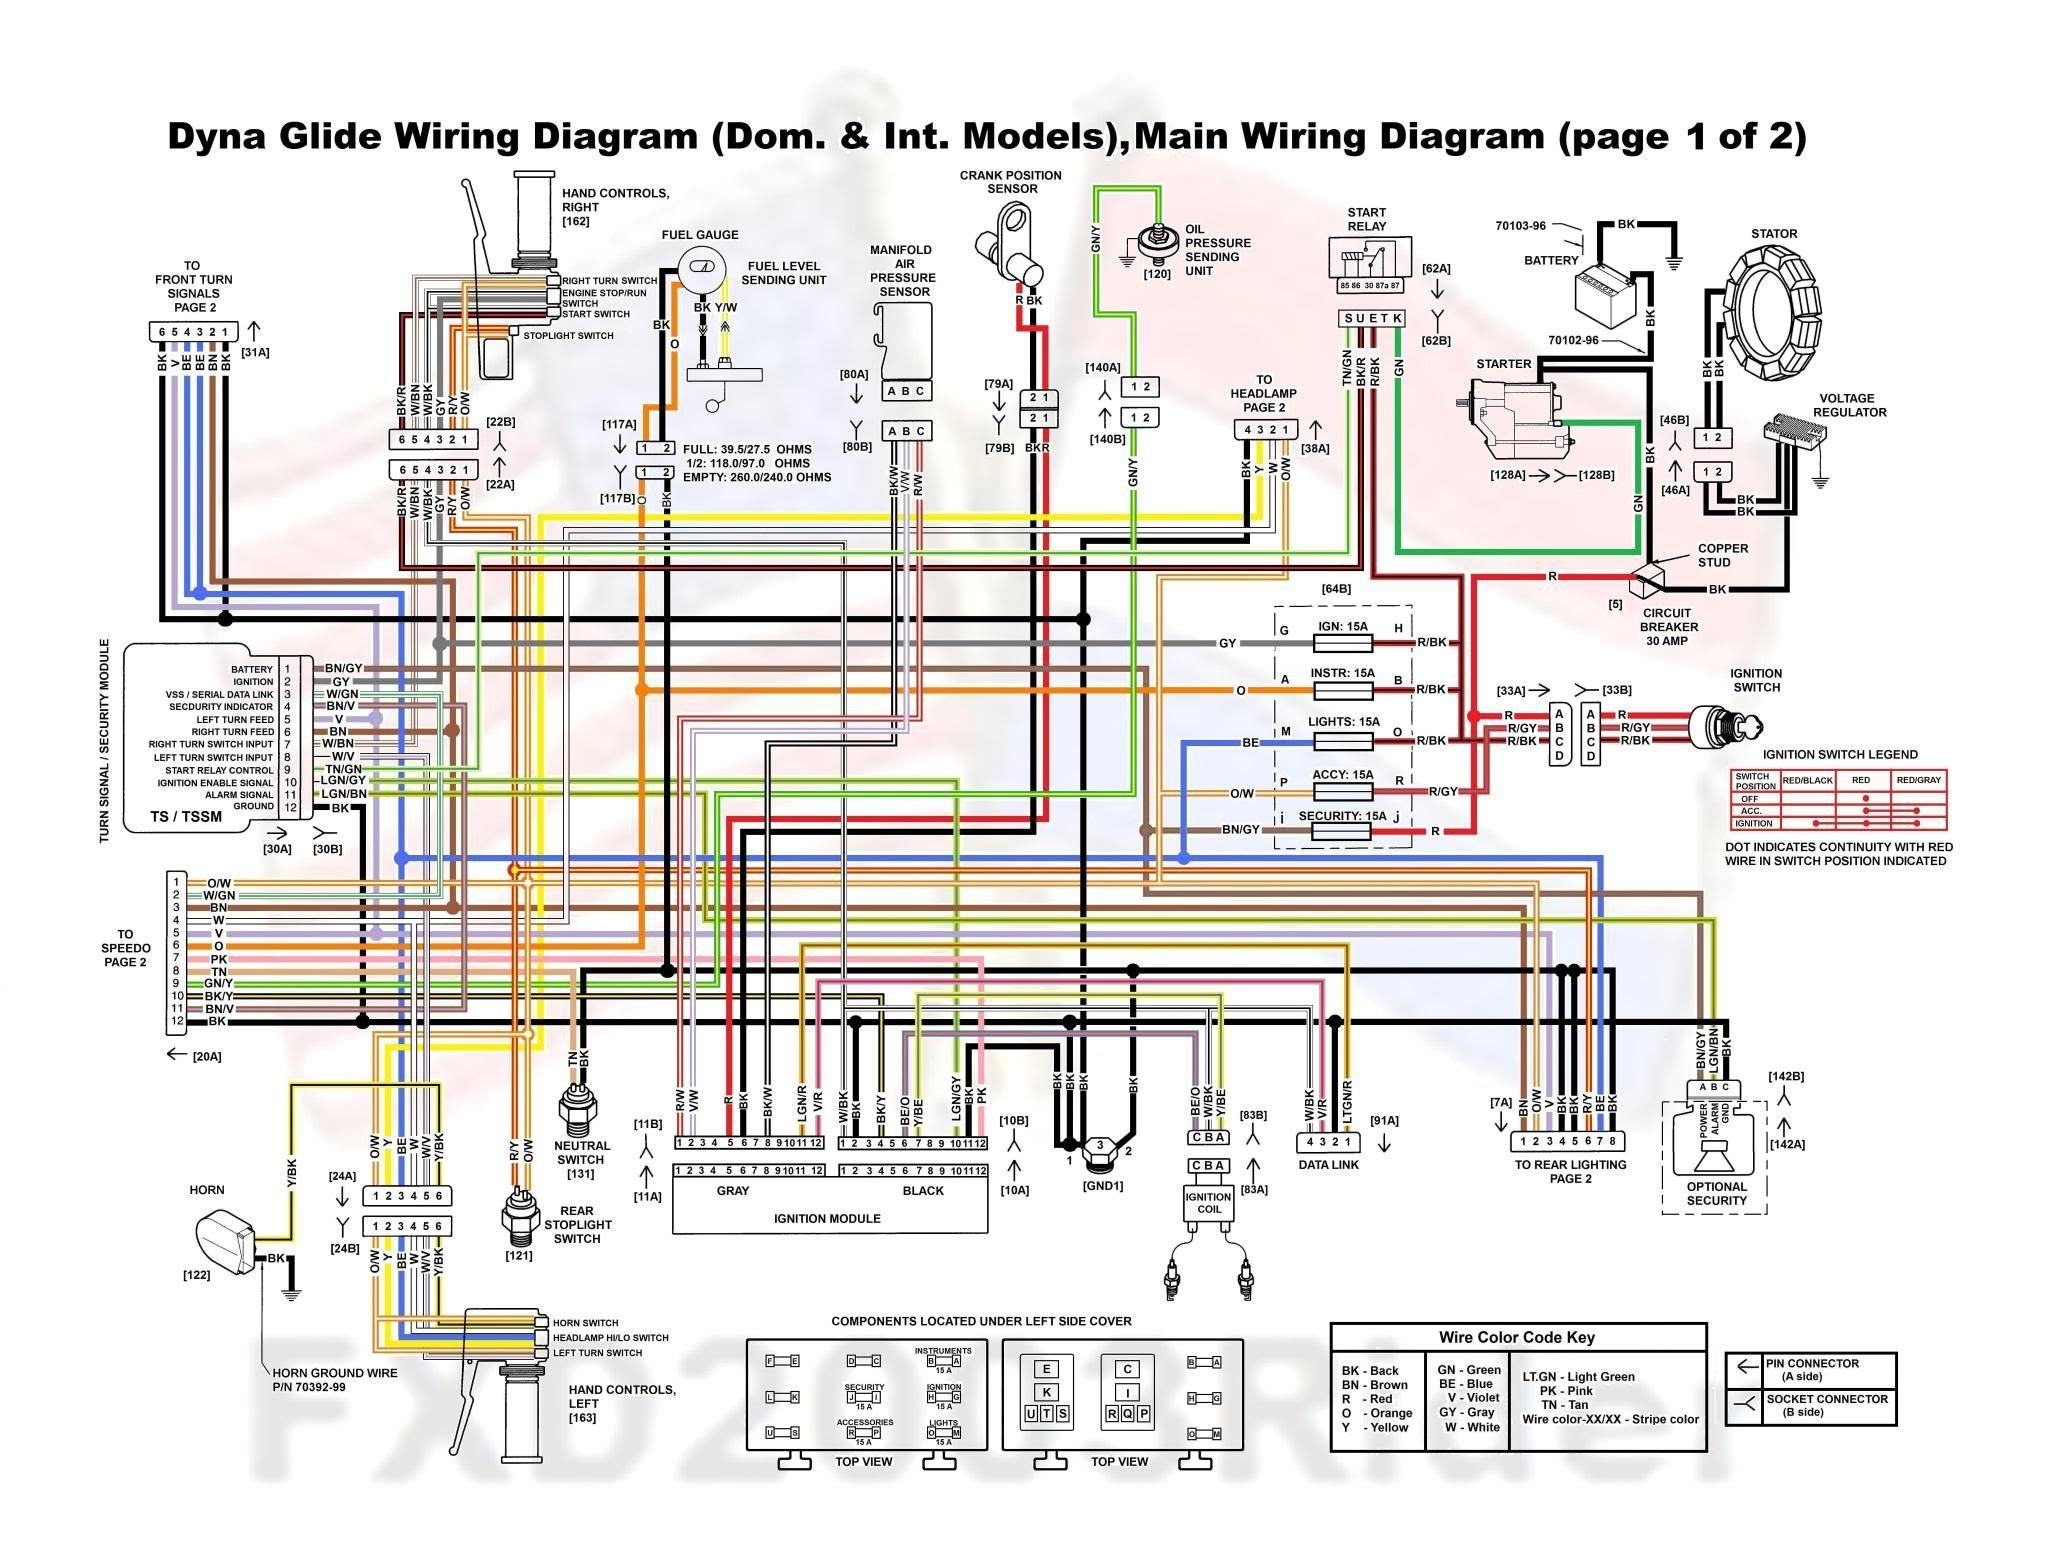 Wiring Diagram For 2009 Harley Touring | Wiring Diagram on